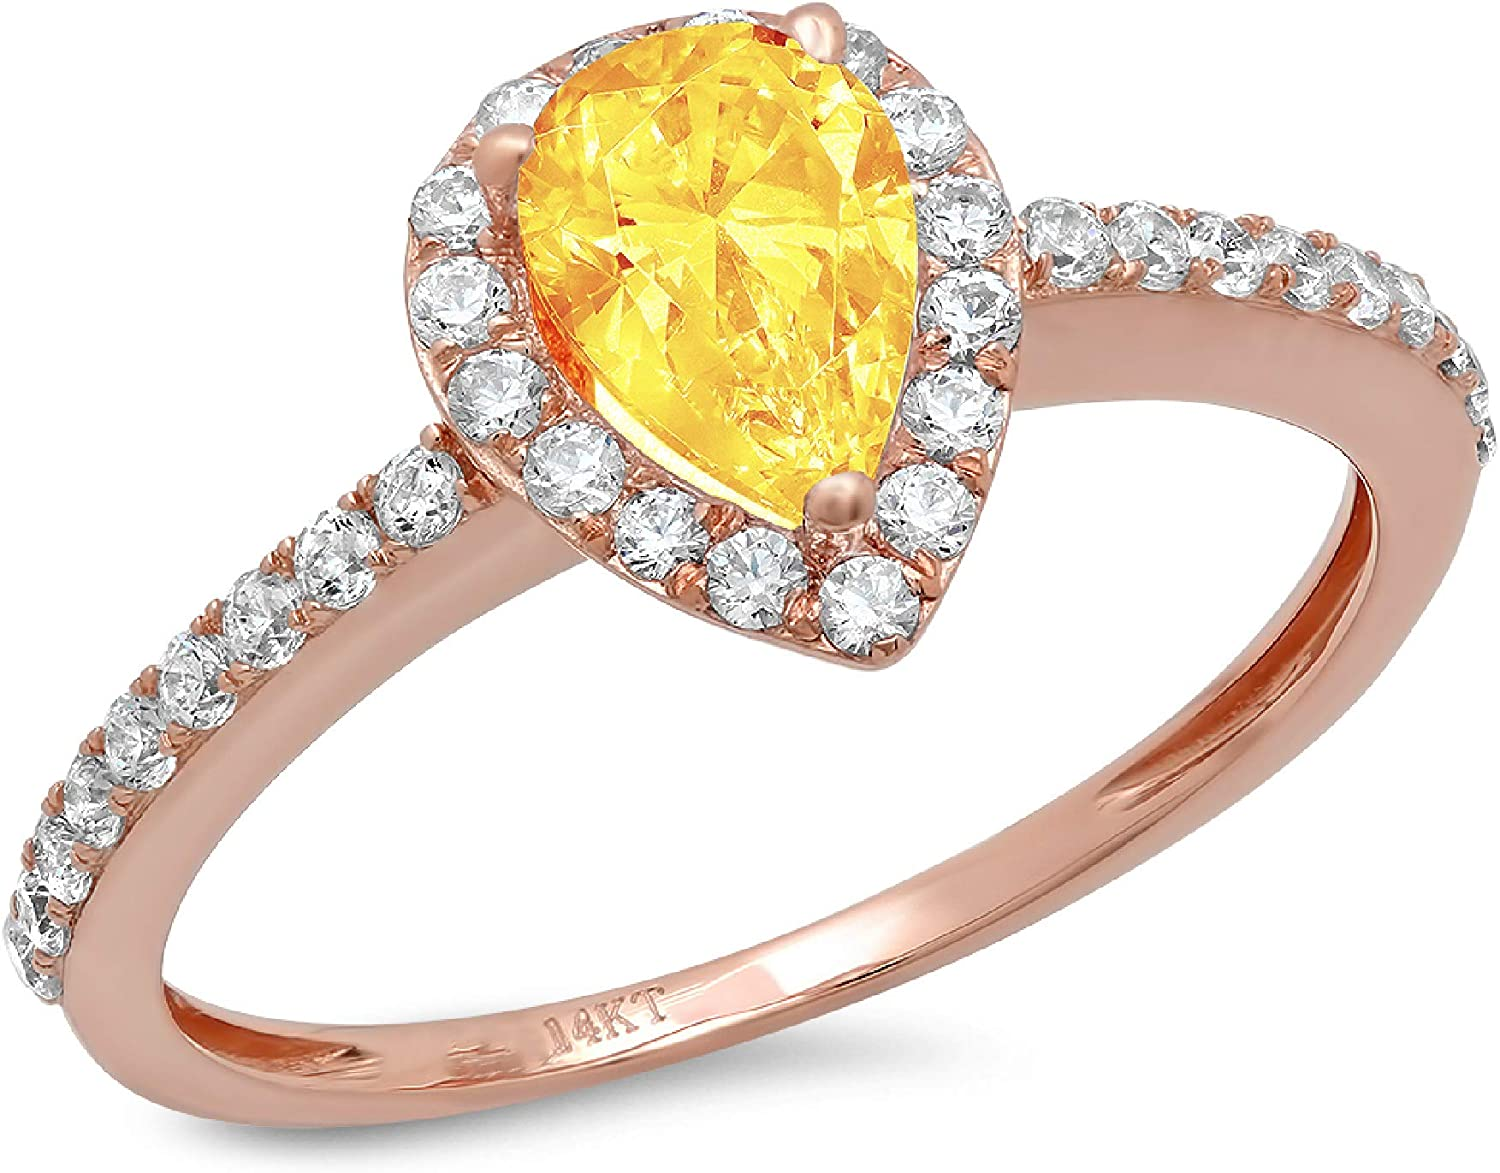 1.16ct Brilliant Pear Cut Solitaire with accent Natural Yellow Citrine Gemstone Ideal VVS1 Engagement Promise Statement Anniversary Bridal Wedding ring Real Solid 14k Pink Rose Gold